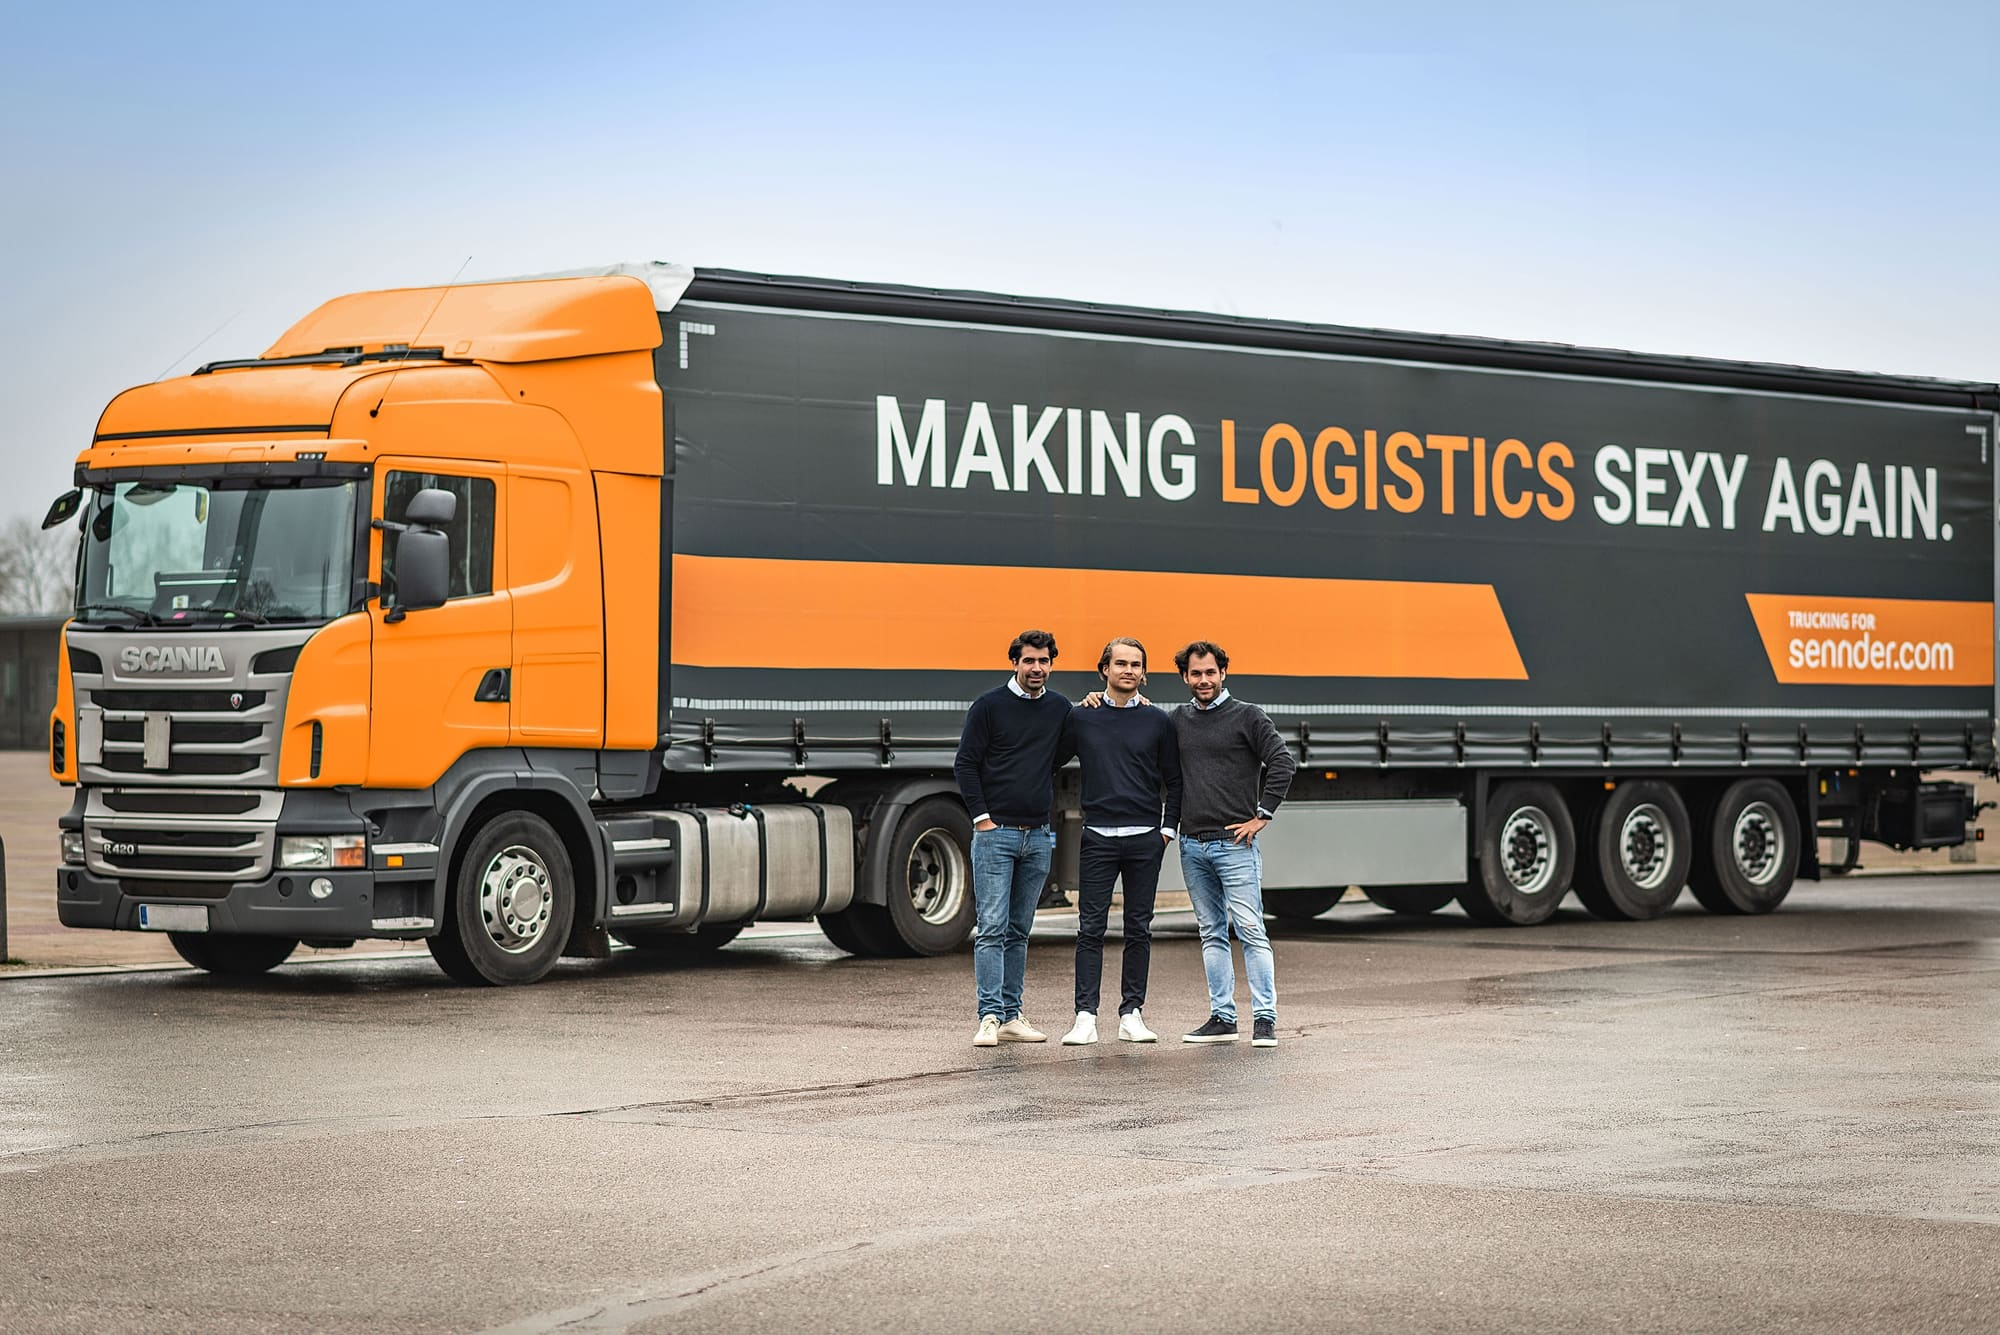 Photo of the company truck and a group of people